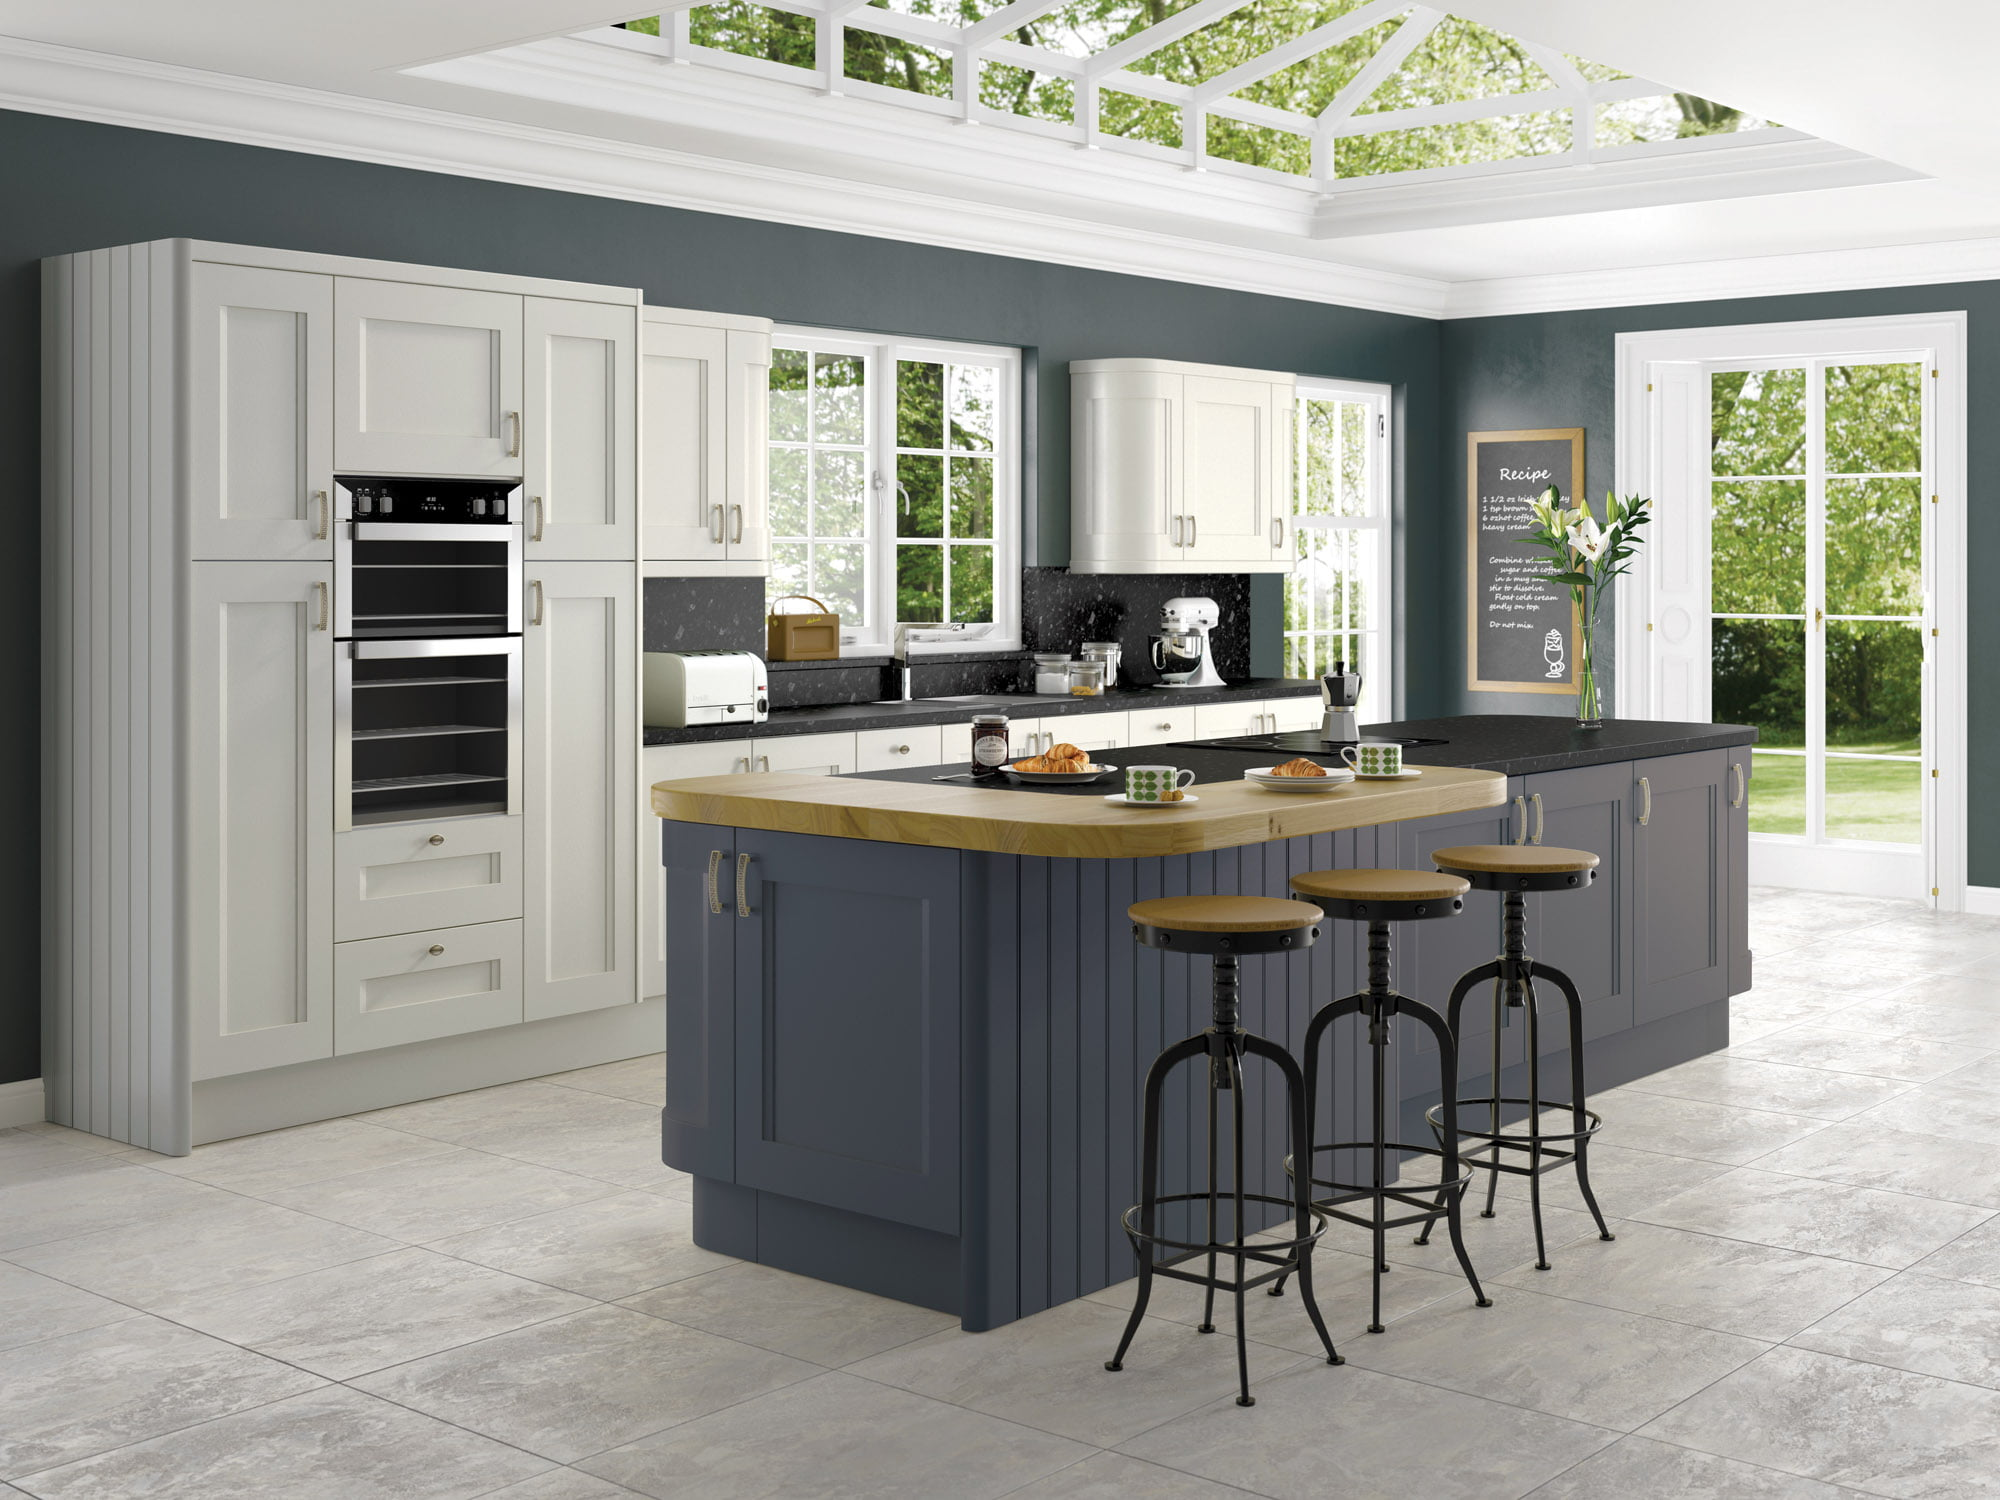 Freedom Furniture Kitchens In Frame Kitchens In Sheffield Get A Free Quote Online Today